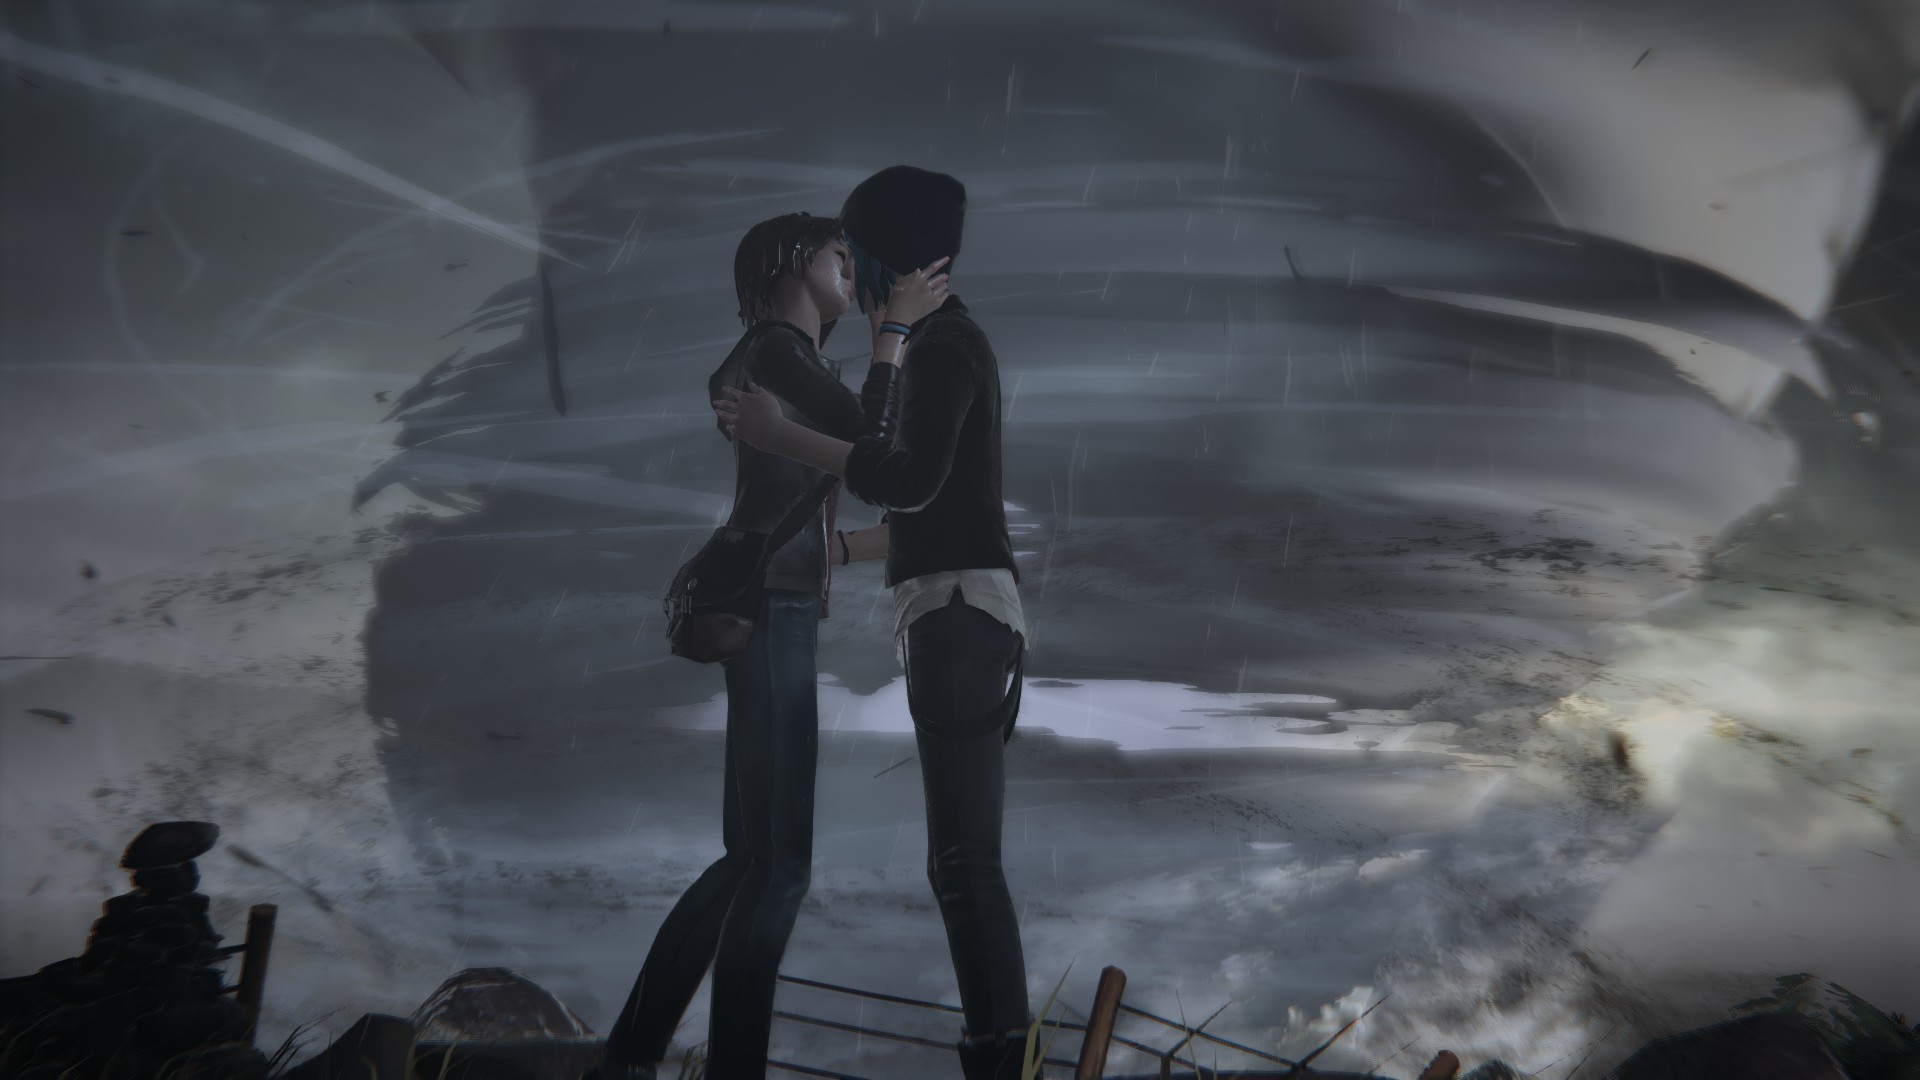 Life Life Is Strange Chloe And Max Storm 342198 Hd